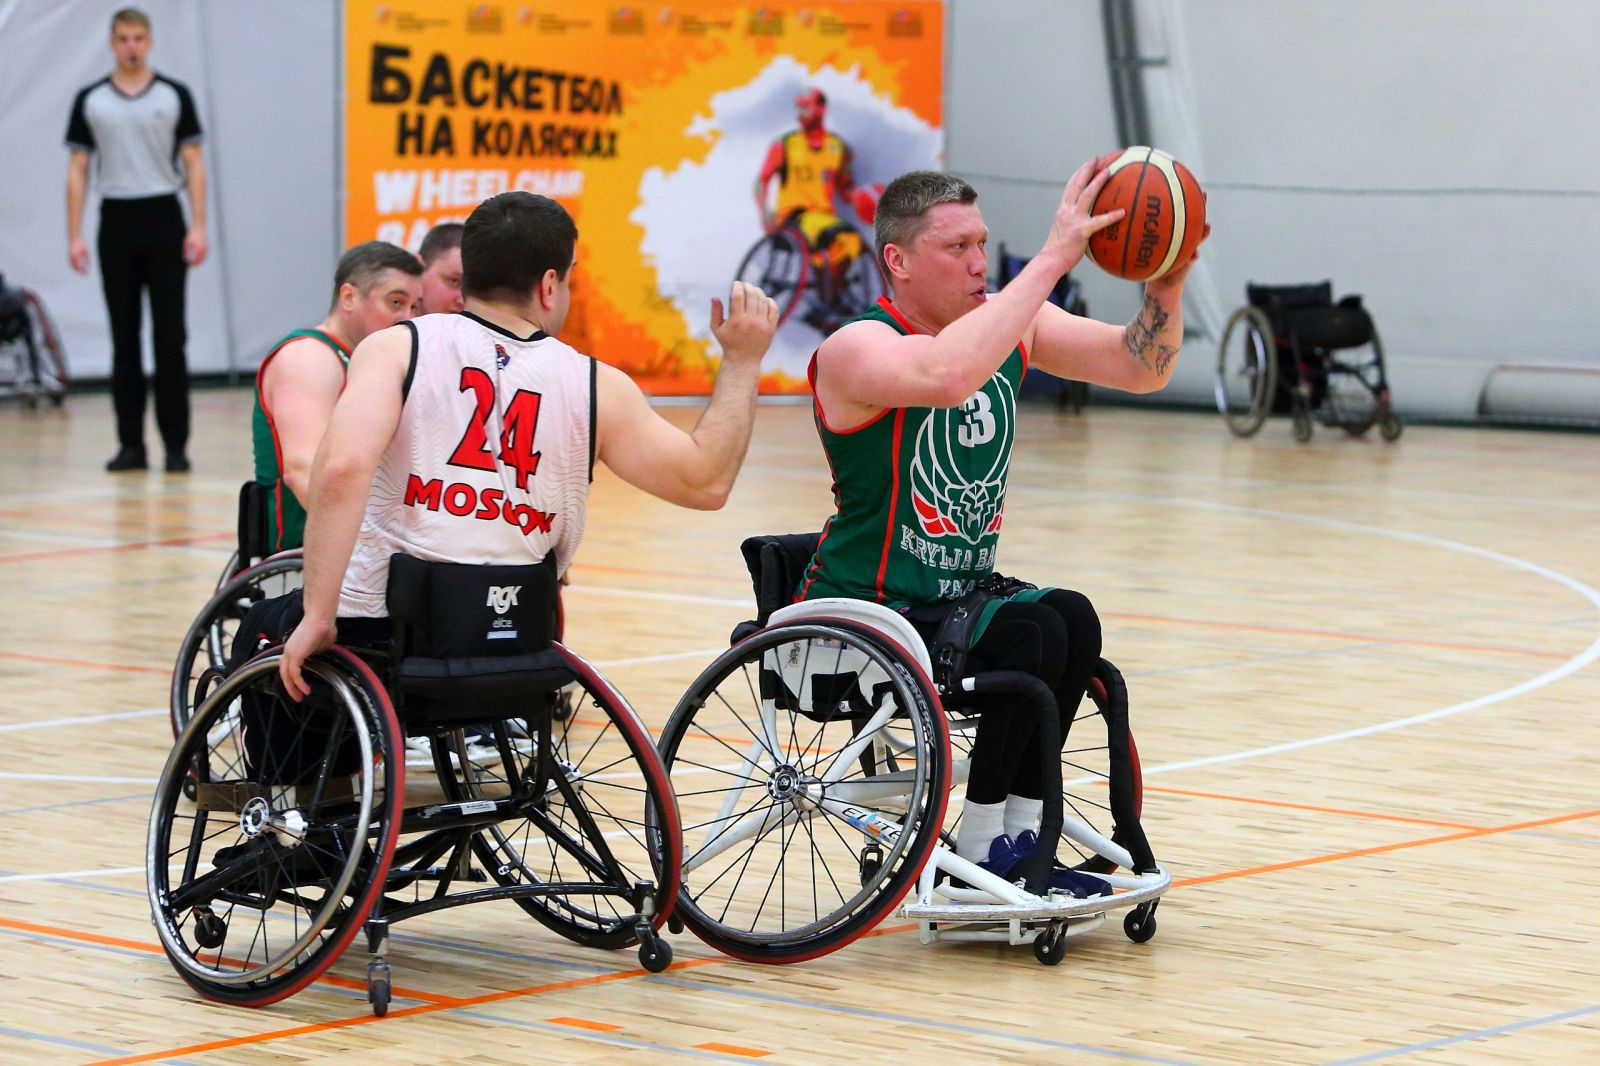 TWELVE TEAMS TOOK PART IN THE FIRST ROUND OF THE RUSSIAN WHEELCHAIR BASKETBALL CHAMPIONSHIP AT PARAMONOVO ISBK